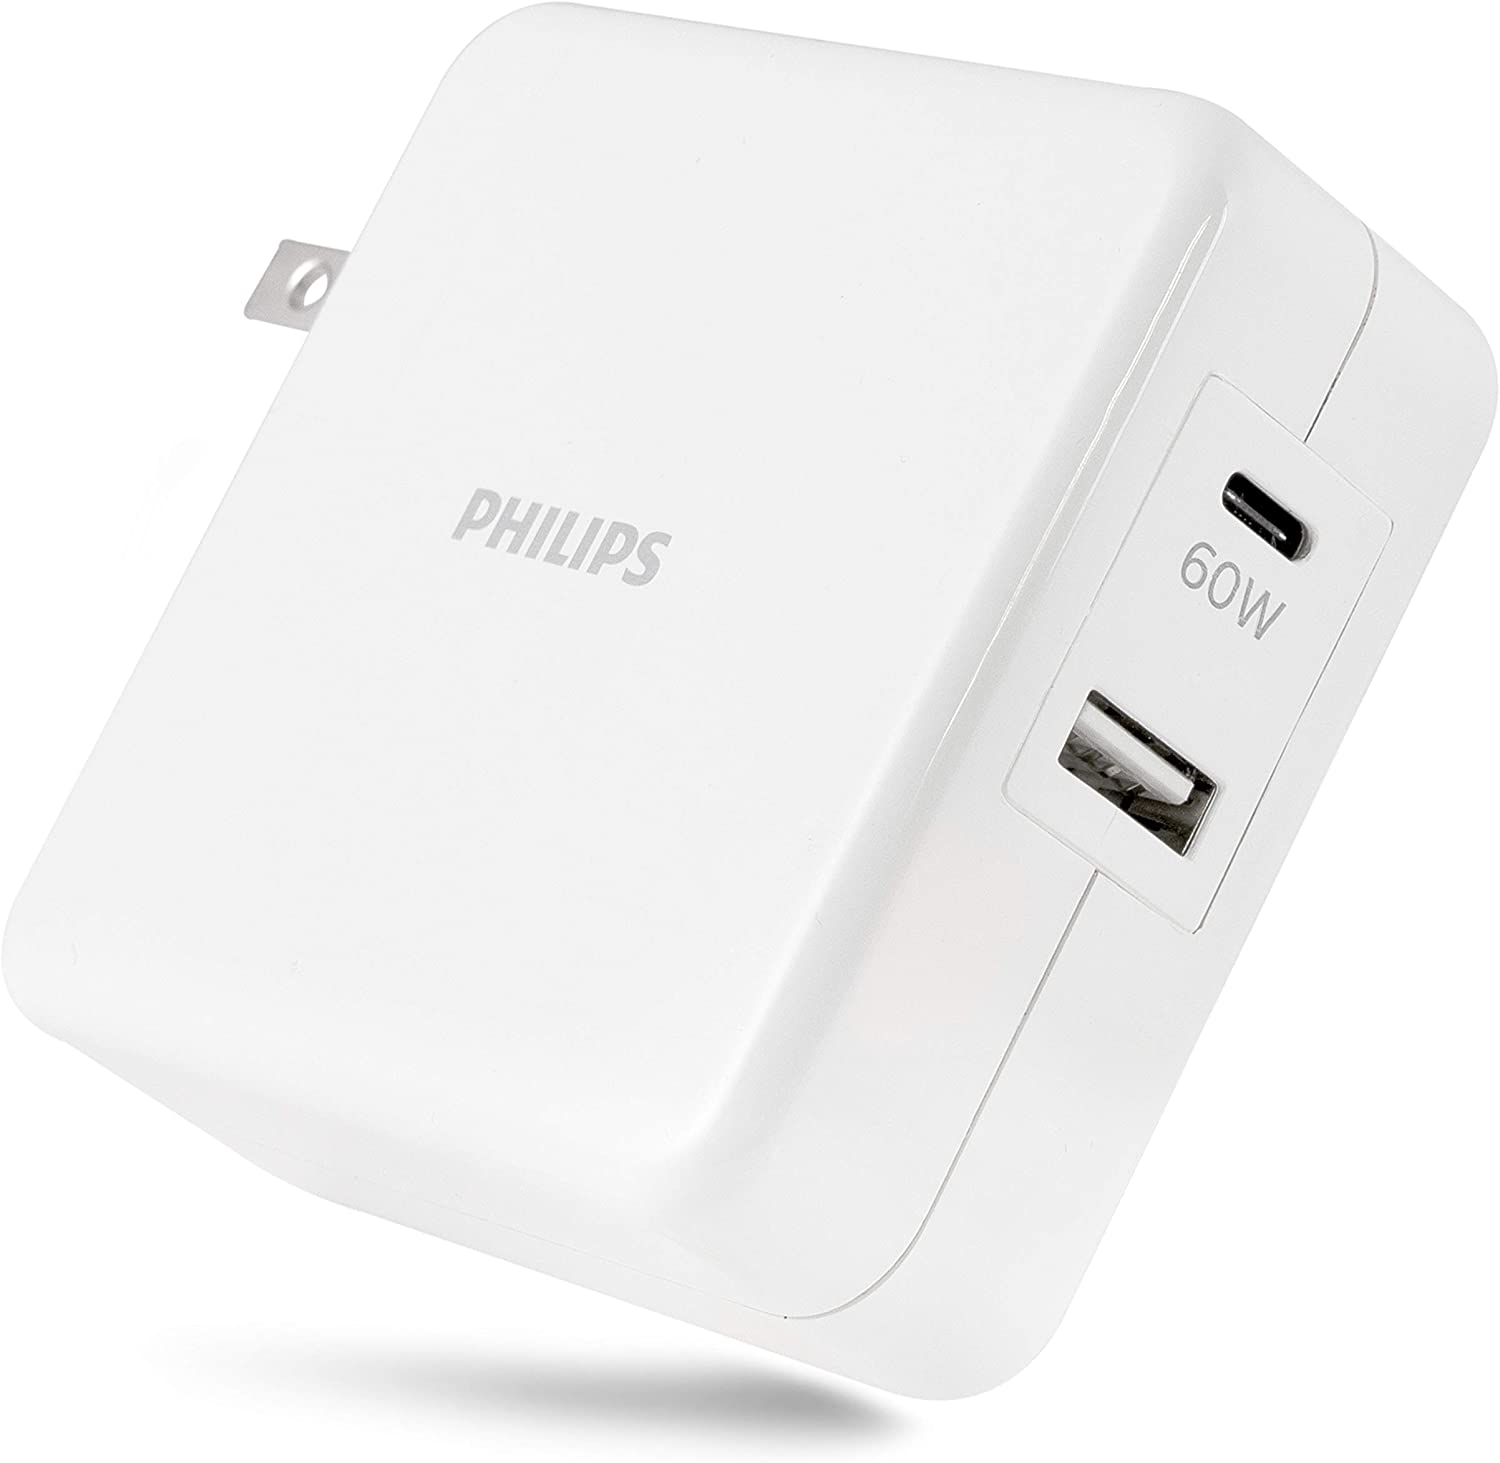 Philips 60W USB-C Laptop/Phone/Tablet Dual Port Wall Fast Charger, Power Delivery, for Type C Laptops, Macbook, iPad Pro, iPhone, Galaxy, Pixel, Great for Travel, 67.5W Total